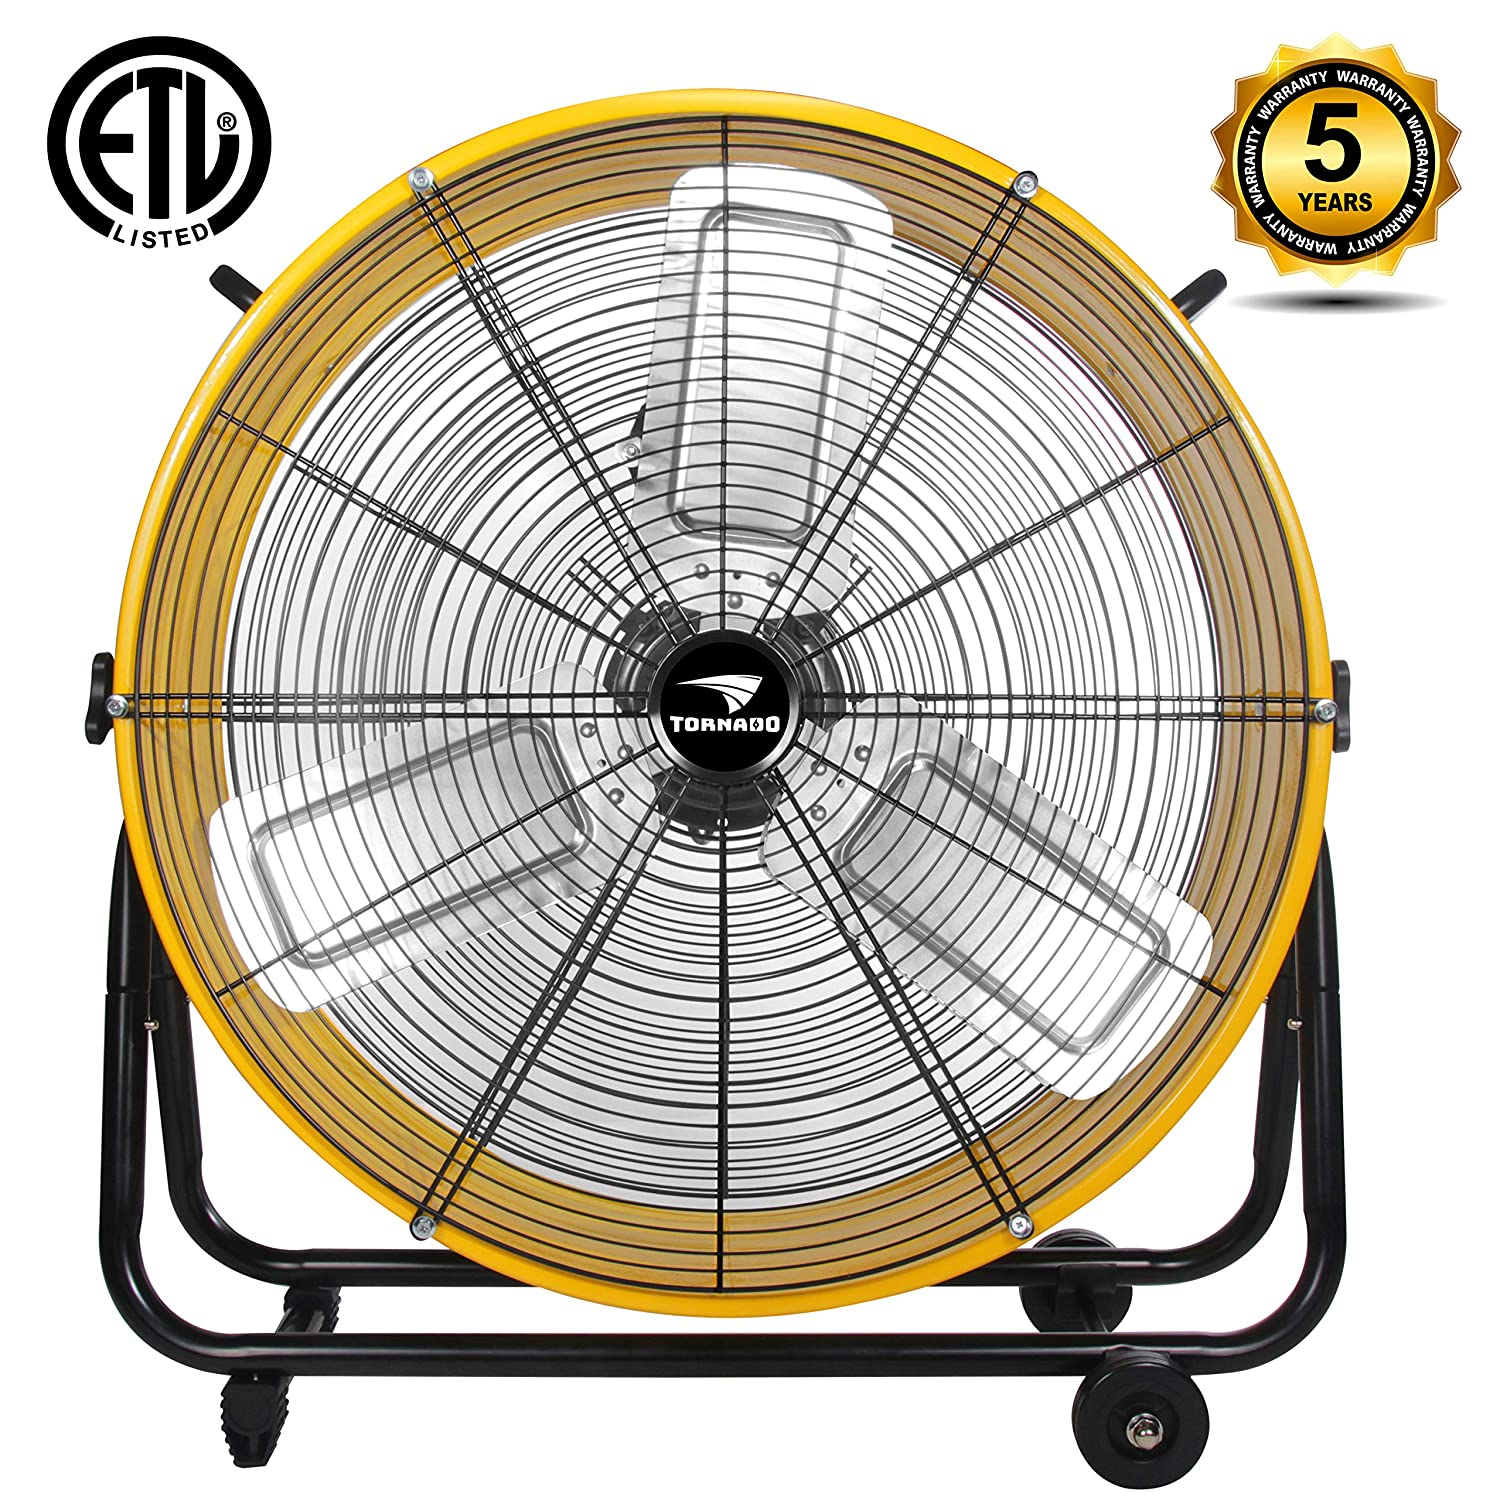 Tornado - 24 Inch High Velocity Air Movement Heavy Duty Metal Drum Fan - 3 Speed Air Circulator Fan - For Industrial, Commercial, Residential, and Greenhouse Use - ETL Safety Listed - 5 Years Warranty